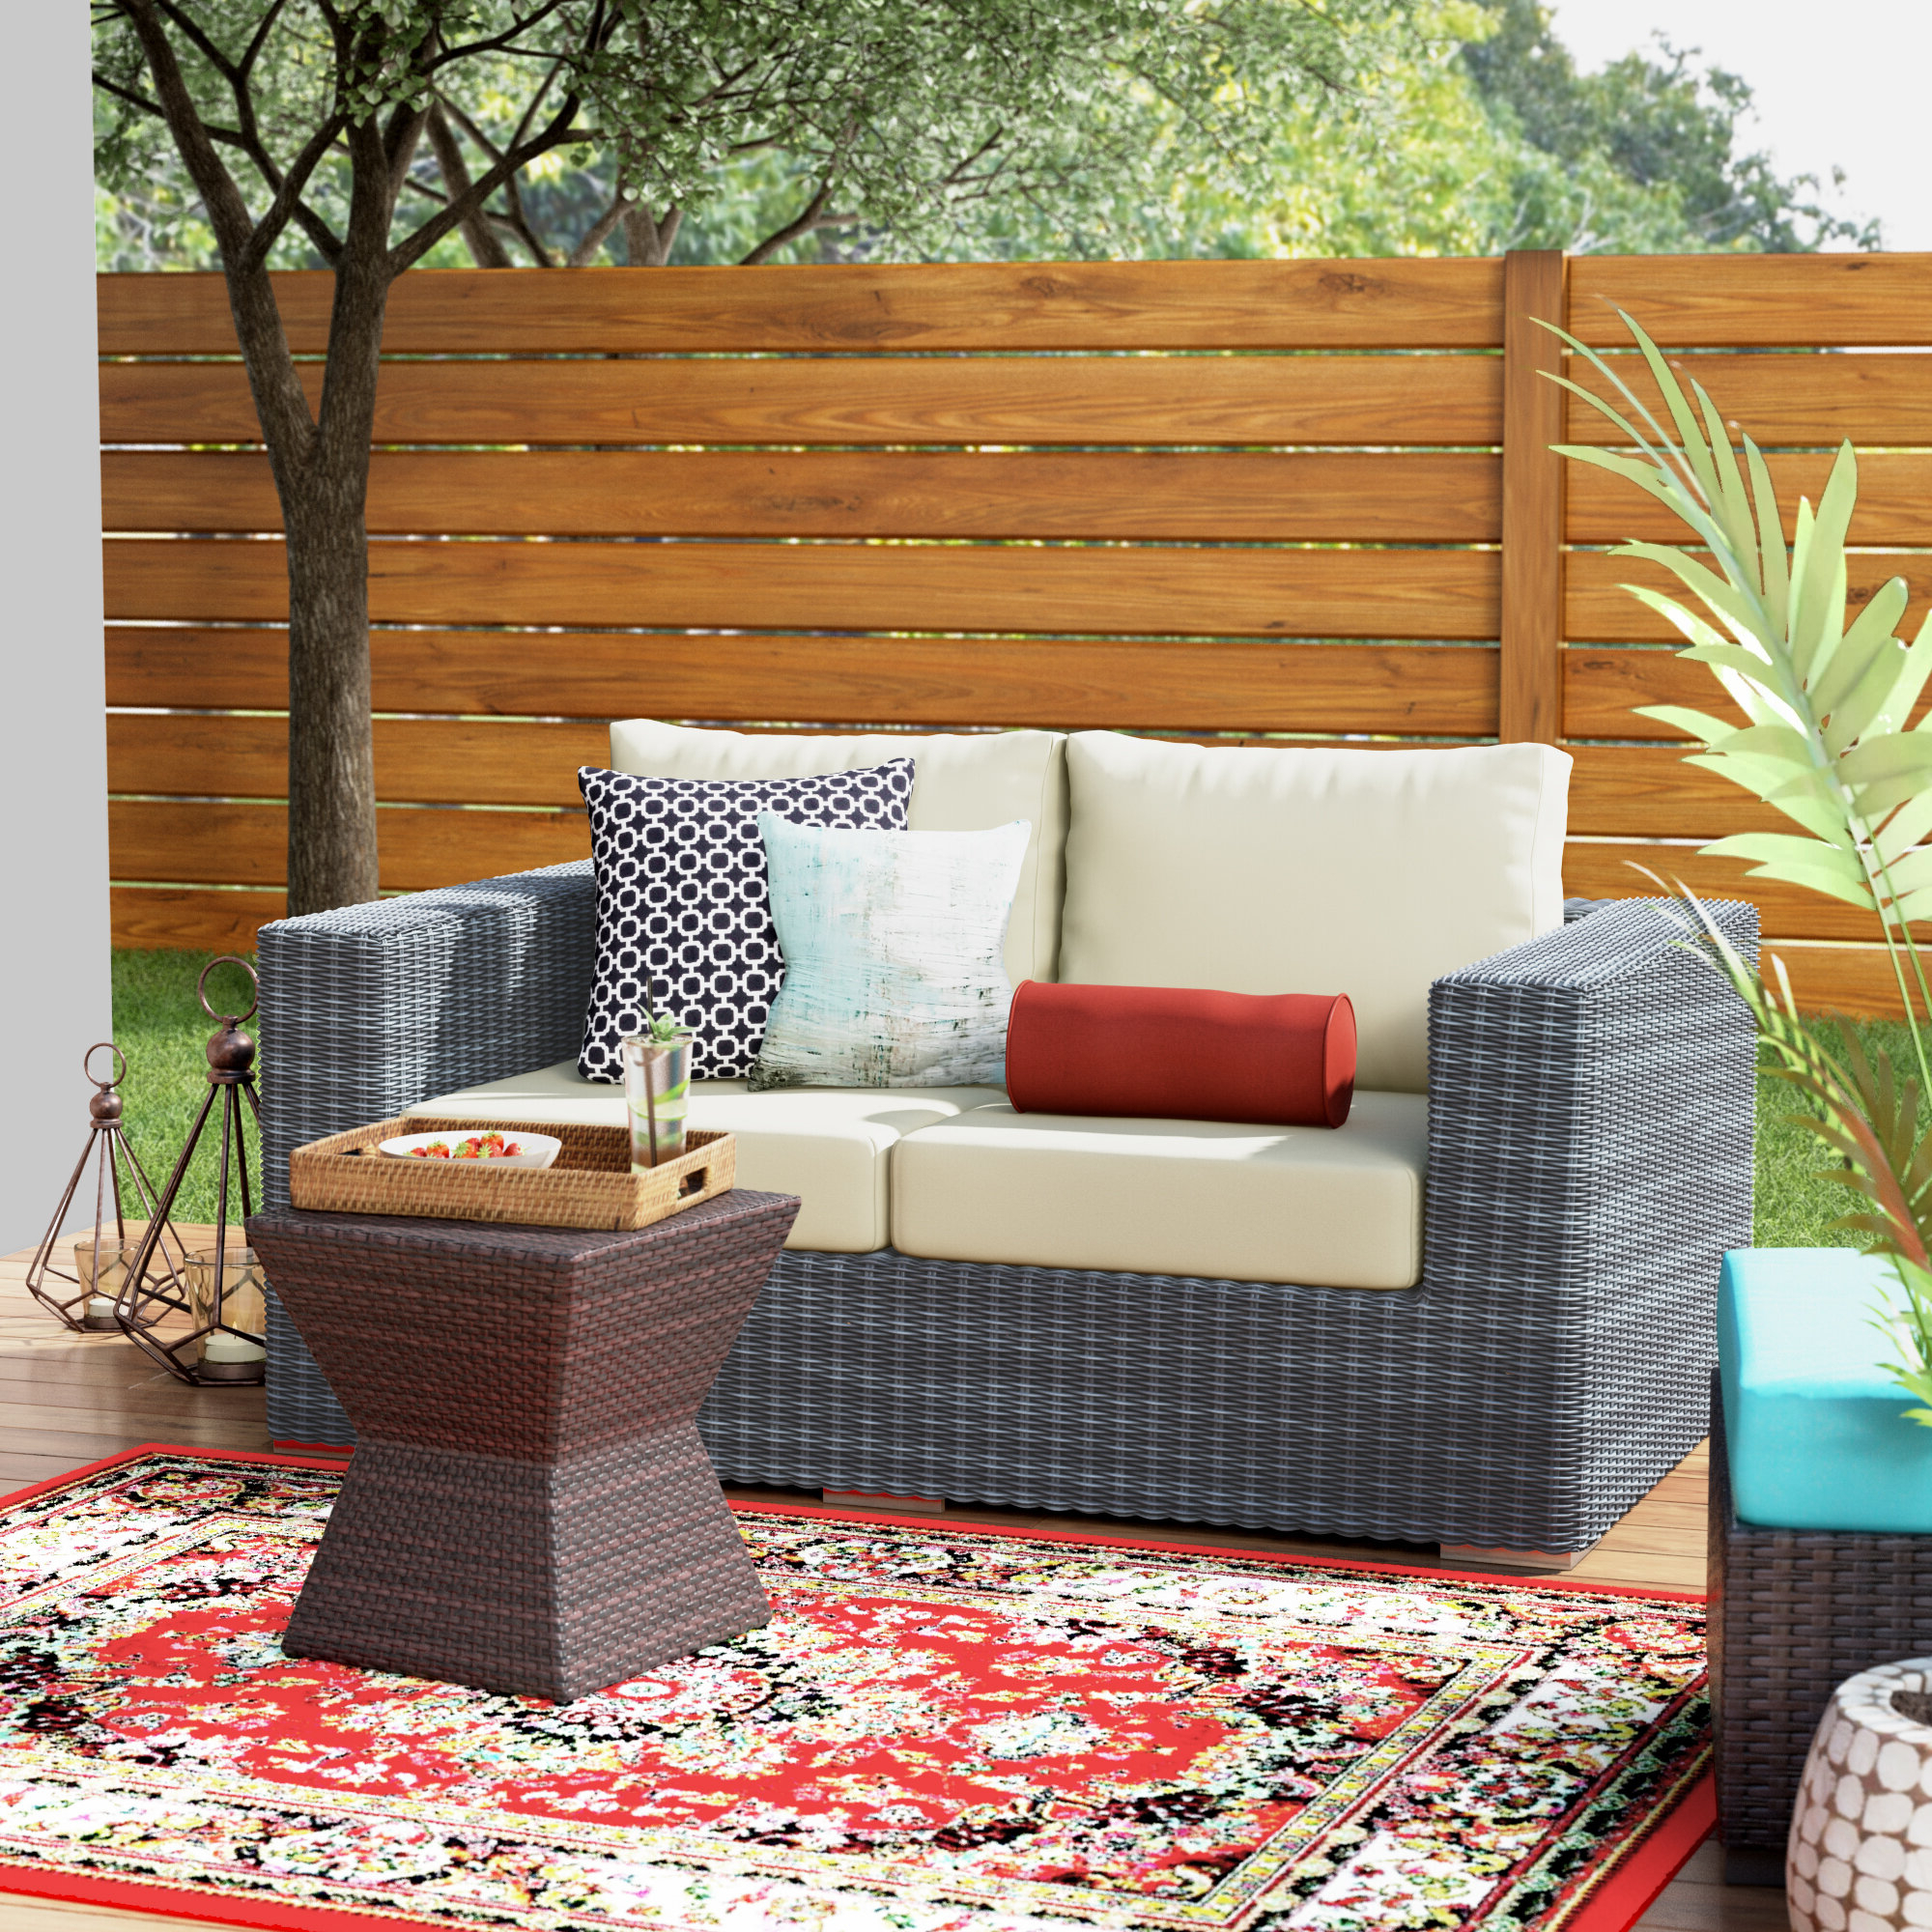 Most Recently Released Keiran Patio Daybeds With Cushions In Keiran Loveseat With Cushions (View 12 of 20)